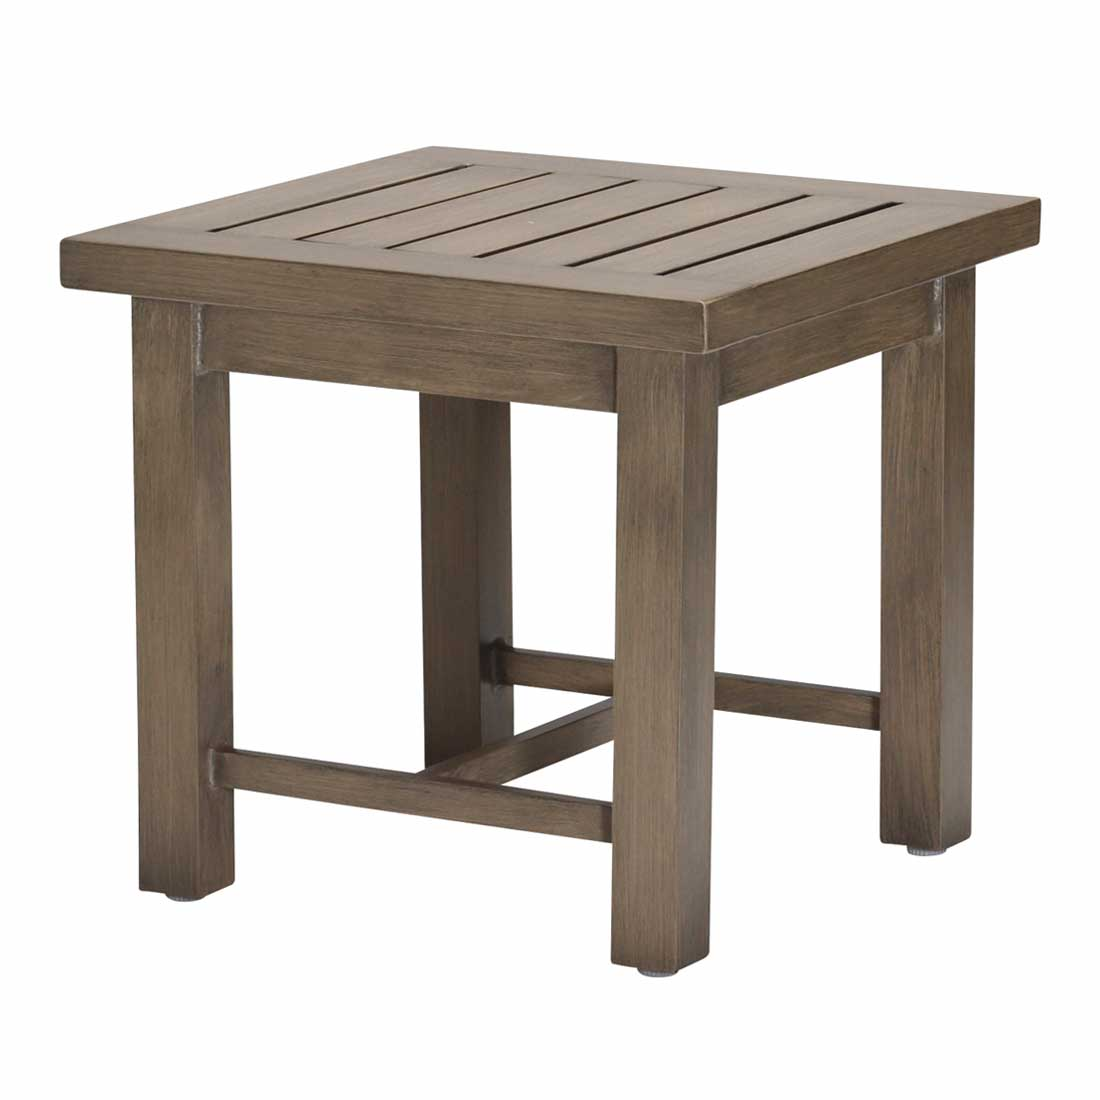 Club Aluminum End Table Functional Versatility